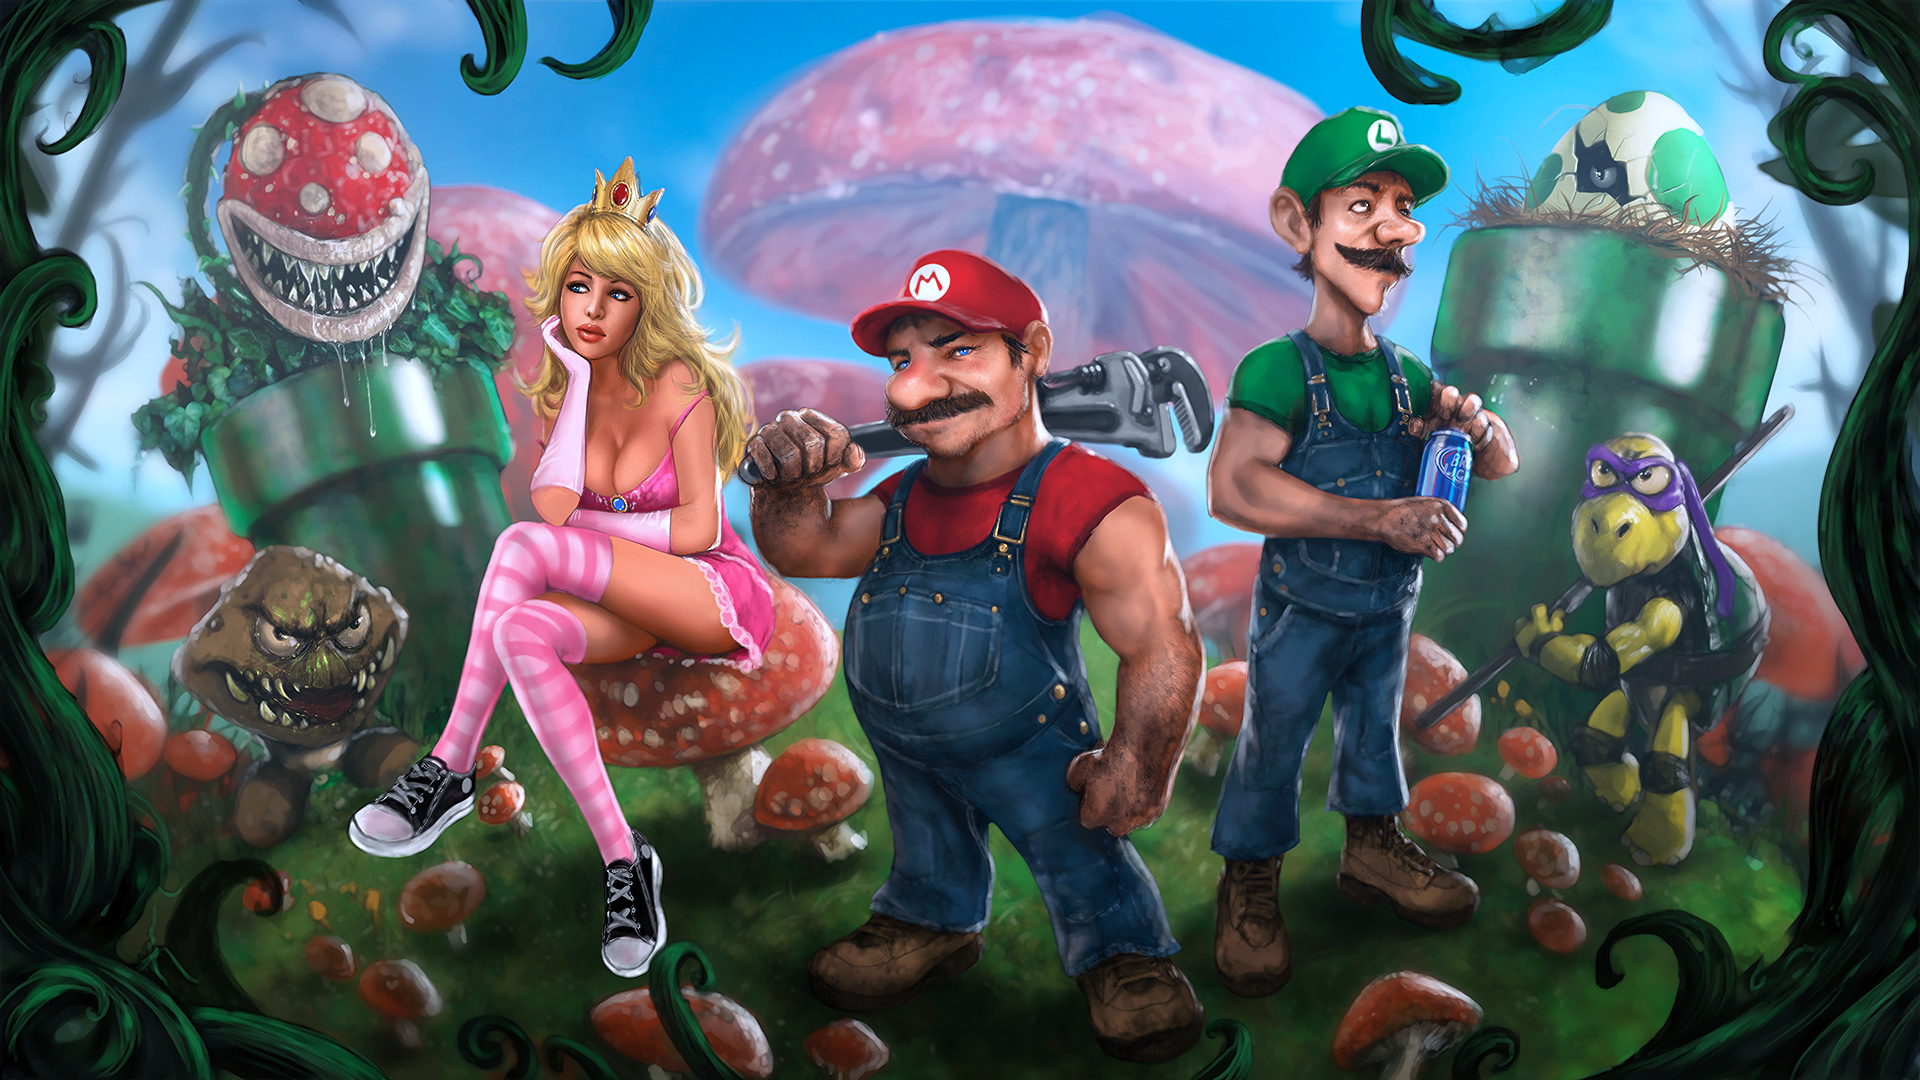 Download-high-quality-Mario-Fictional-Character-Nintendo-Super-Mario-Bros-Game-HD-M-wallpaper-wp3605033